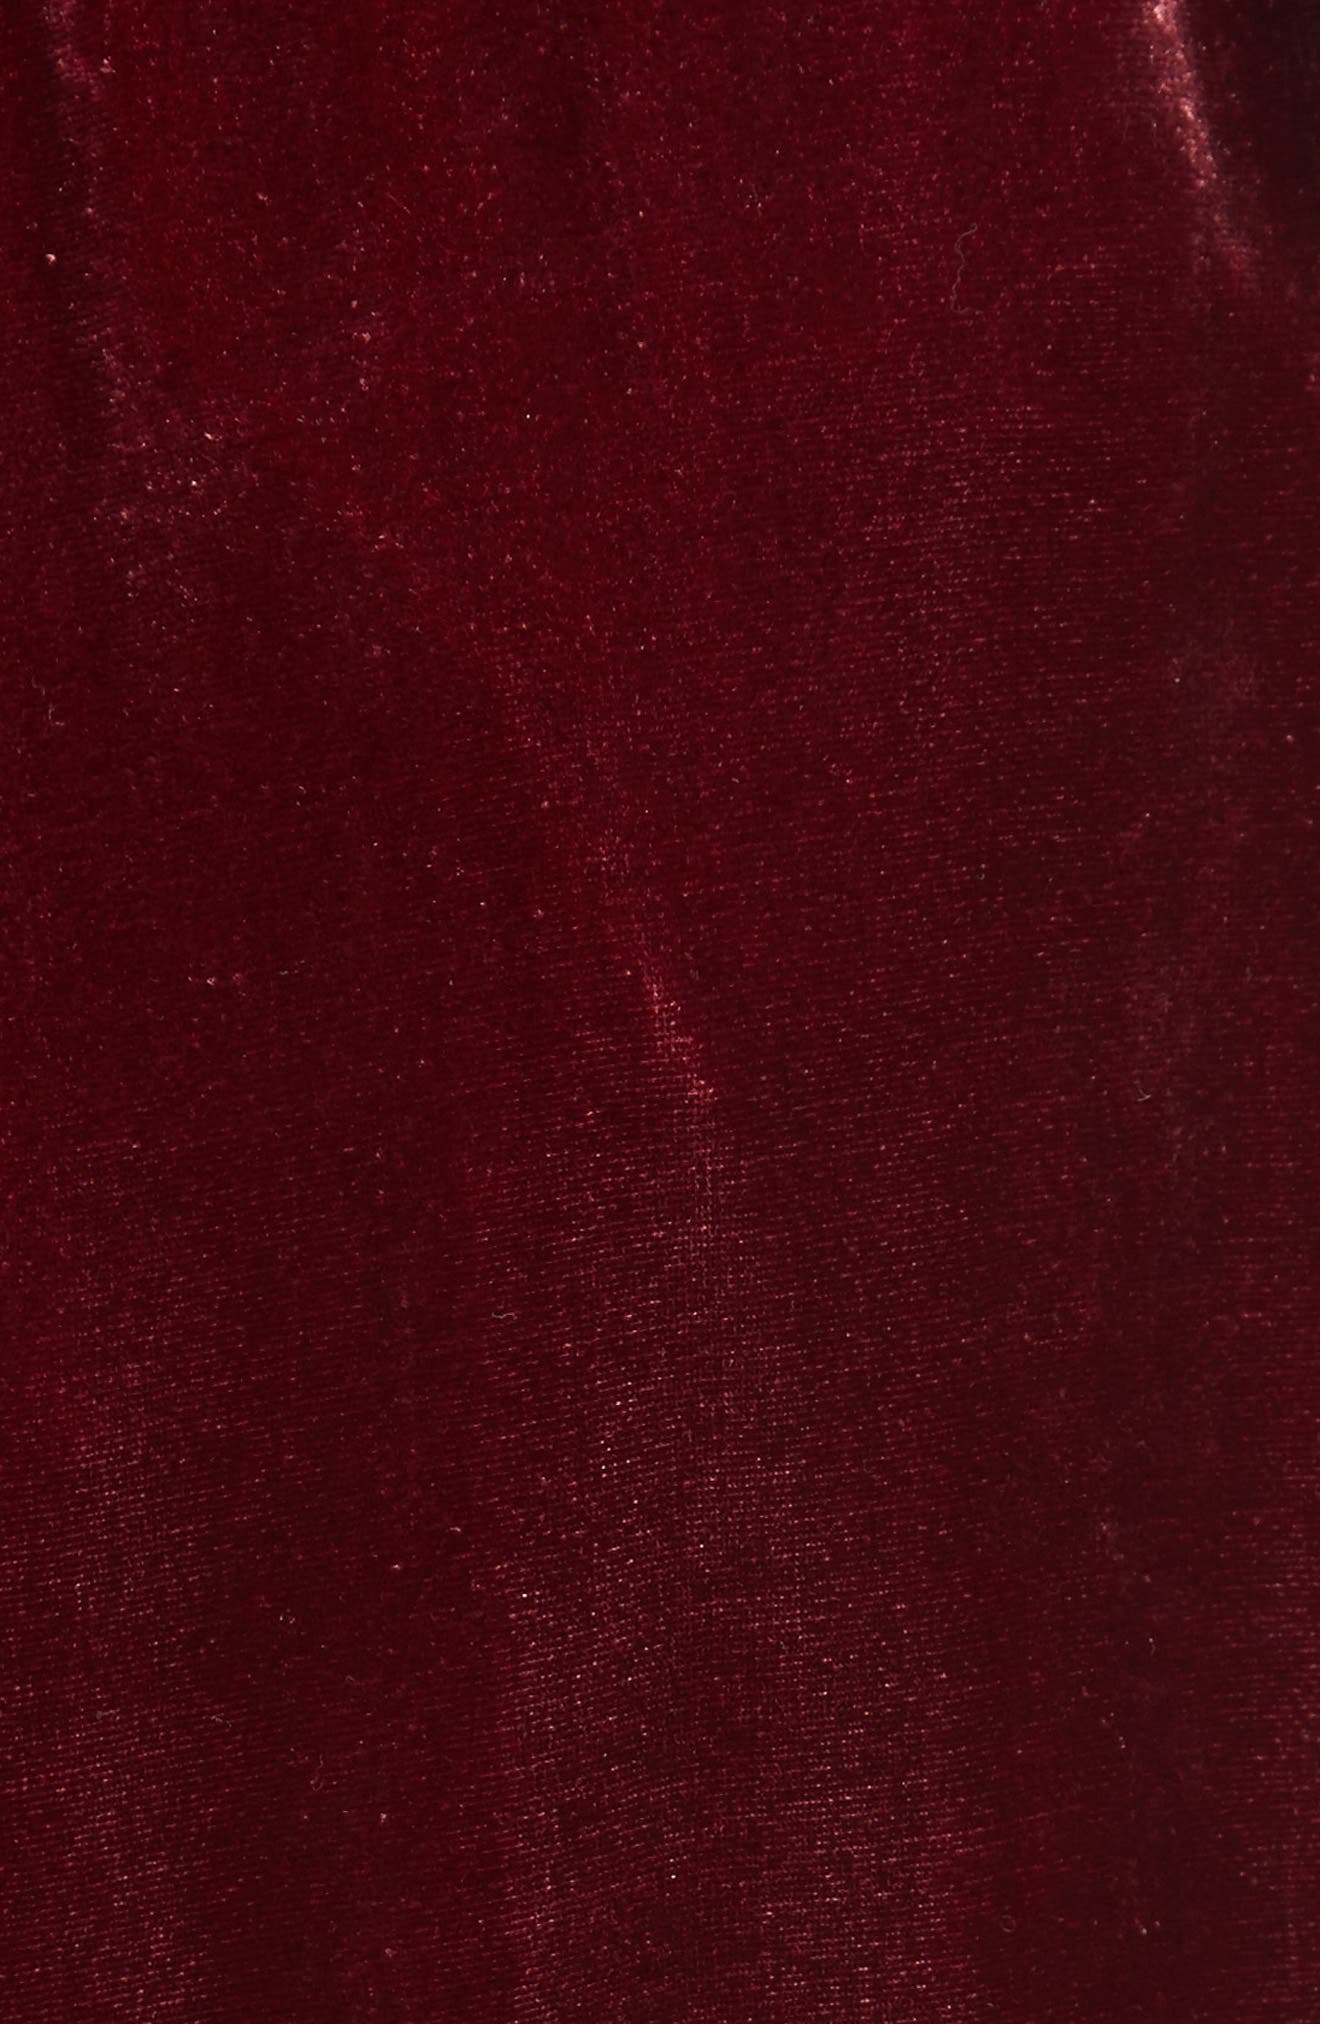 Velvet Midi Skirt,                             Alternate thumbnail 6, color,                             Wine